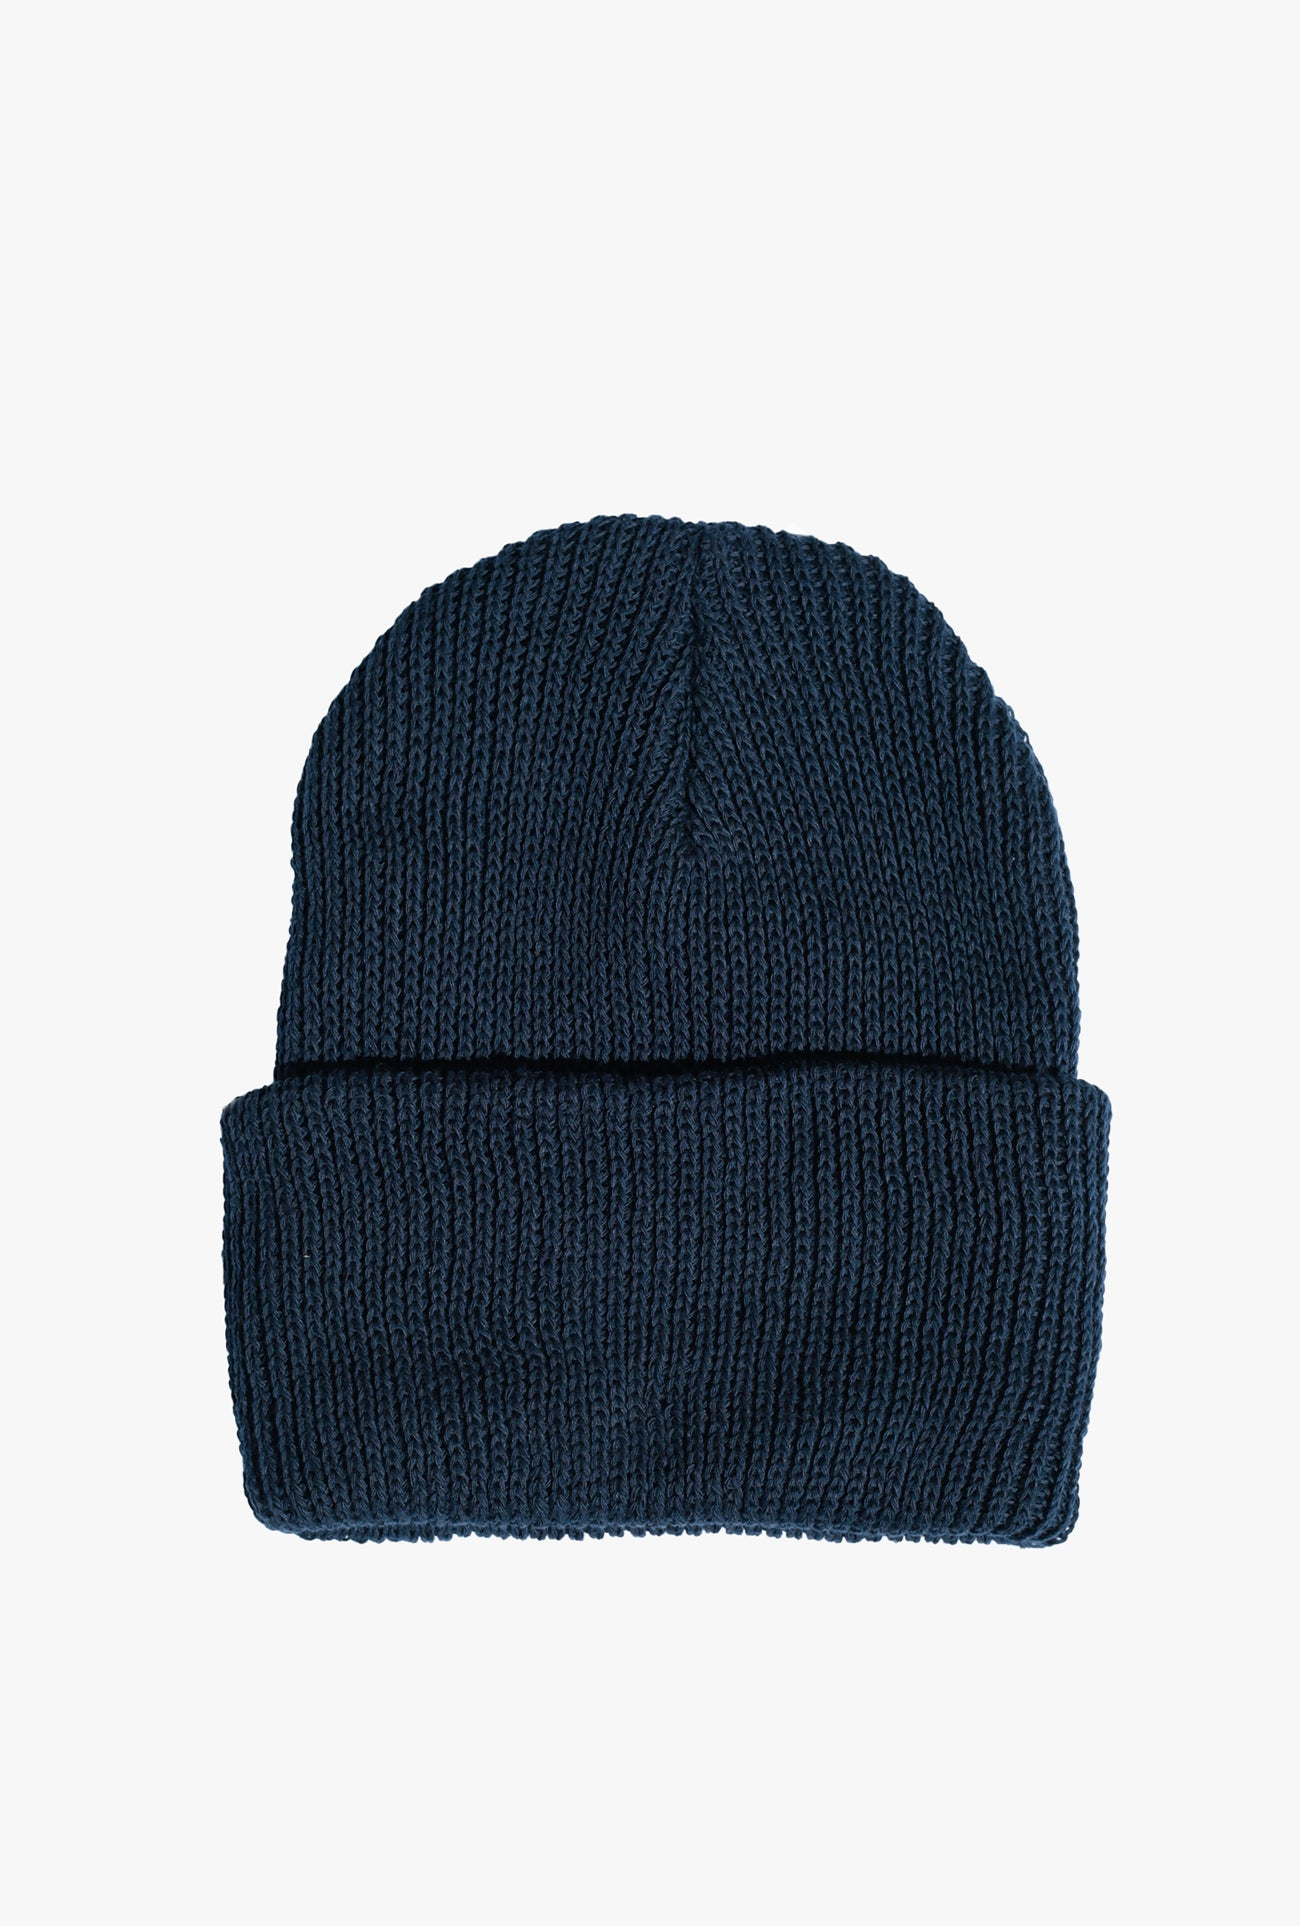 Cotton Rib Beanie - Navy